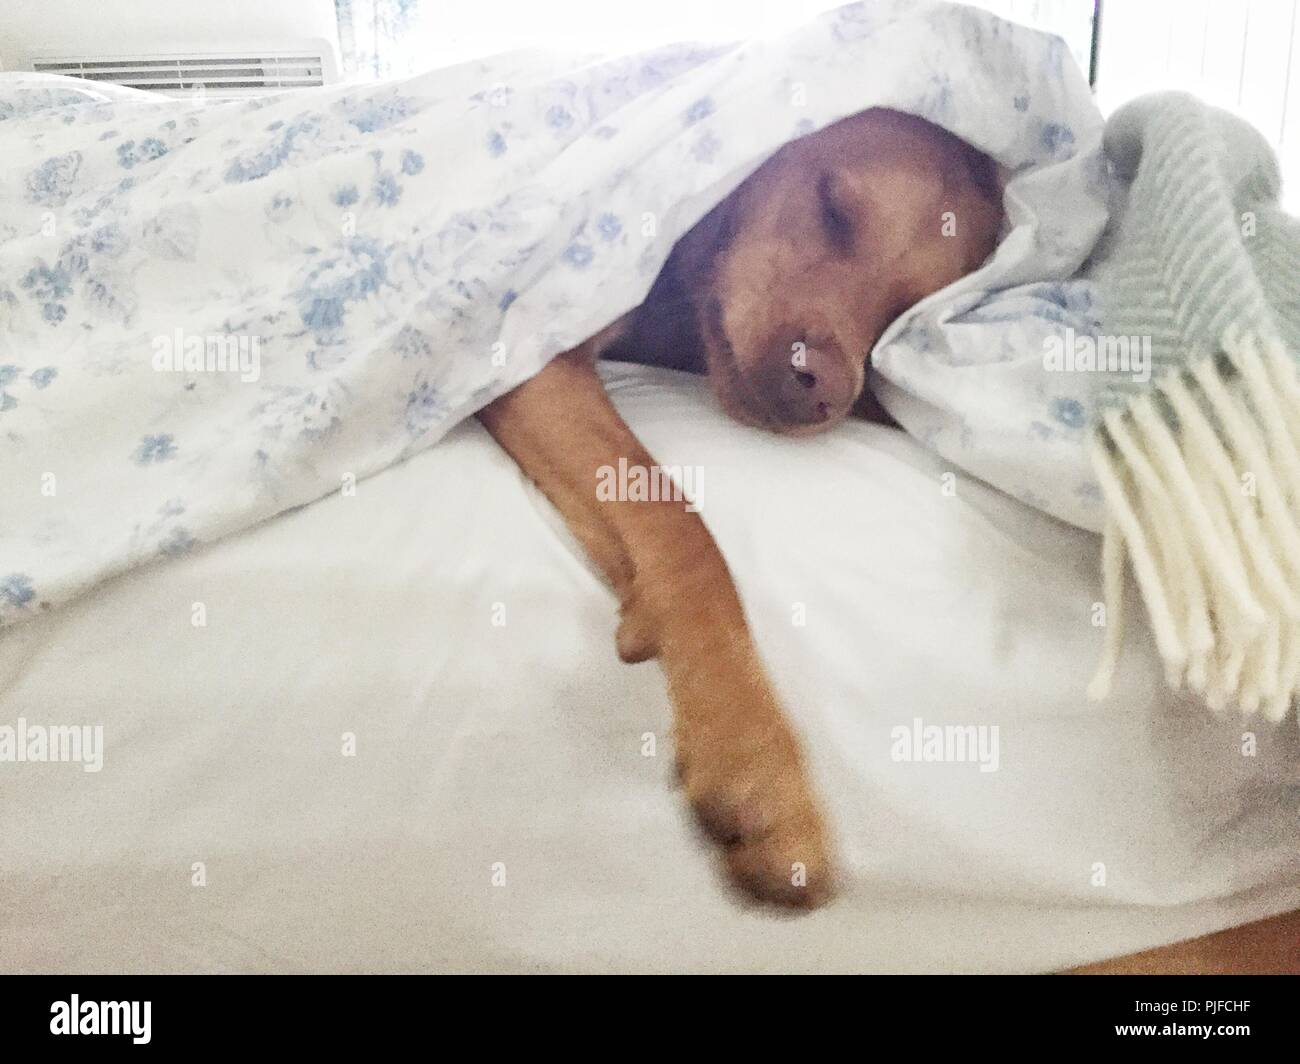 A sleeping yellow Labrador retriever dog under clean white sheets and duvet in a pampered pet image. - Stock Image